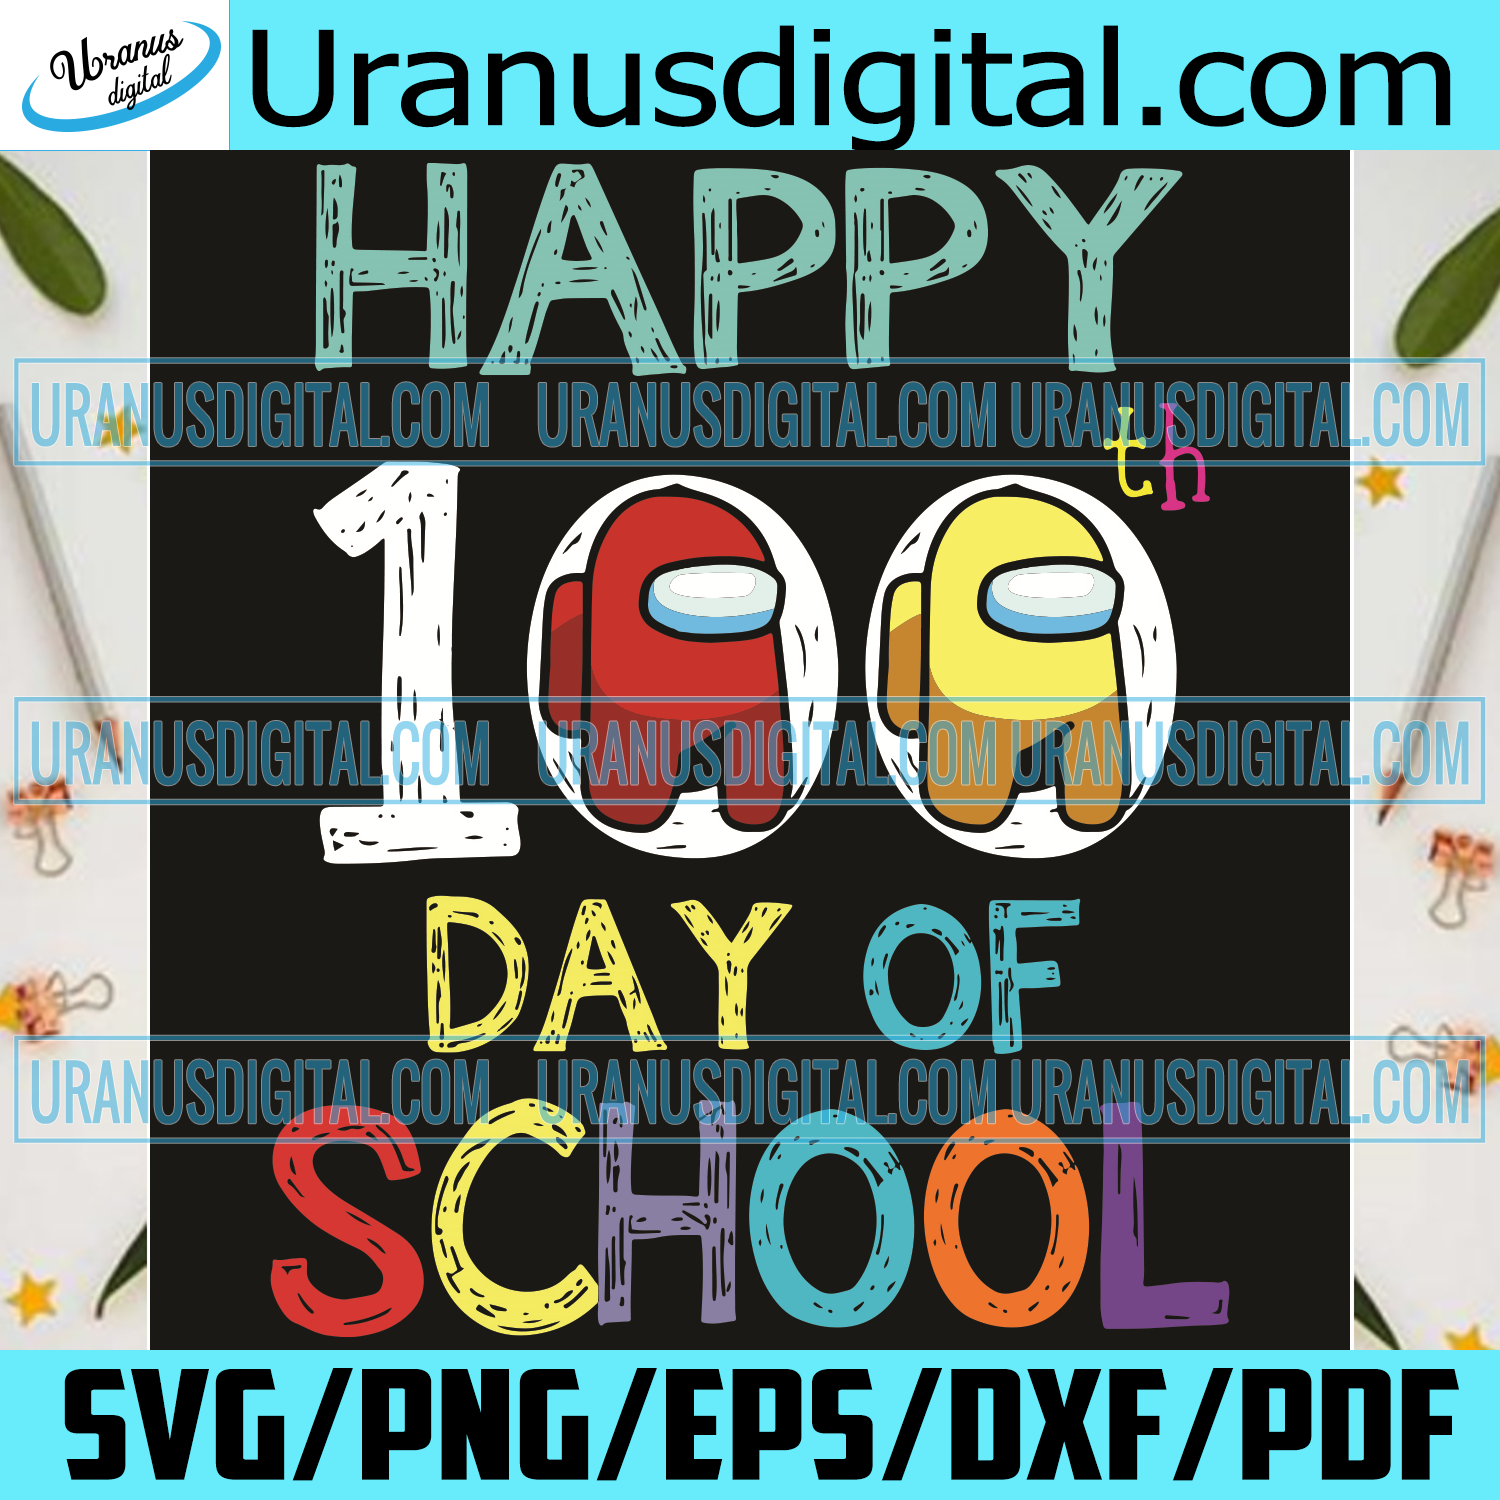 Happy 100th Day Of School Impostors Among Us Svg, Trending Svg, 100 Days Of School Svg, Among Us Svg, Impostors Svg, Crewmate Svg, Game Svg, School Svg, Student Svg, Quarantined Svg, 100th Day Of School Svg, School Gifts Svg